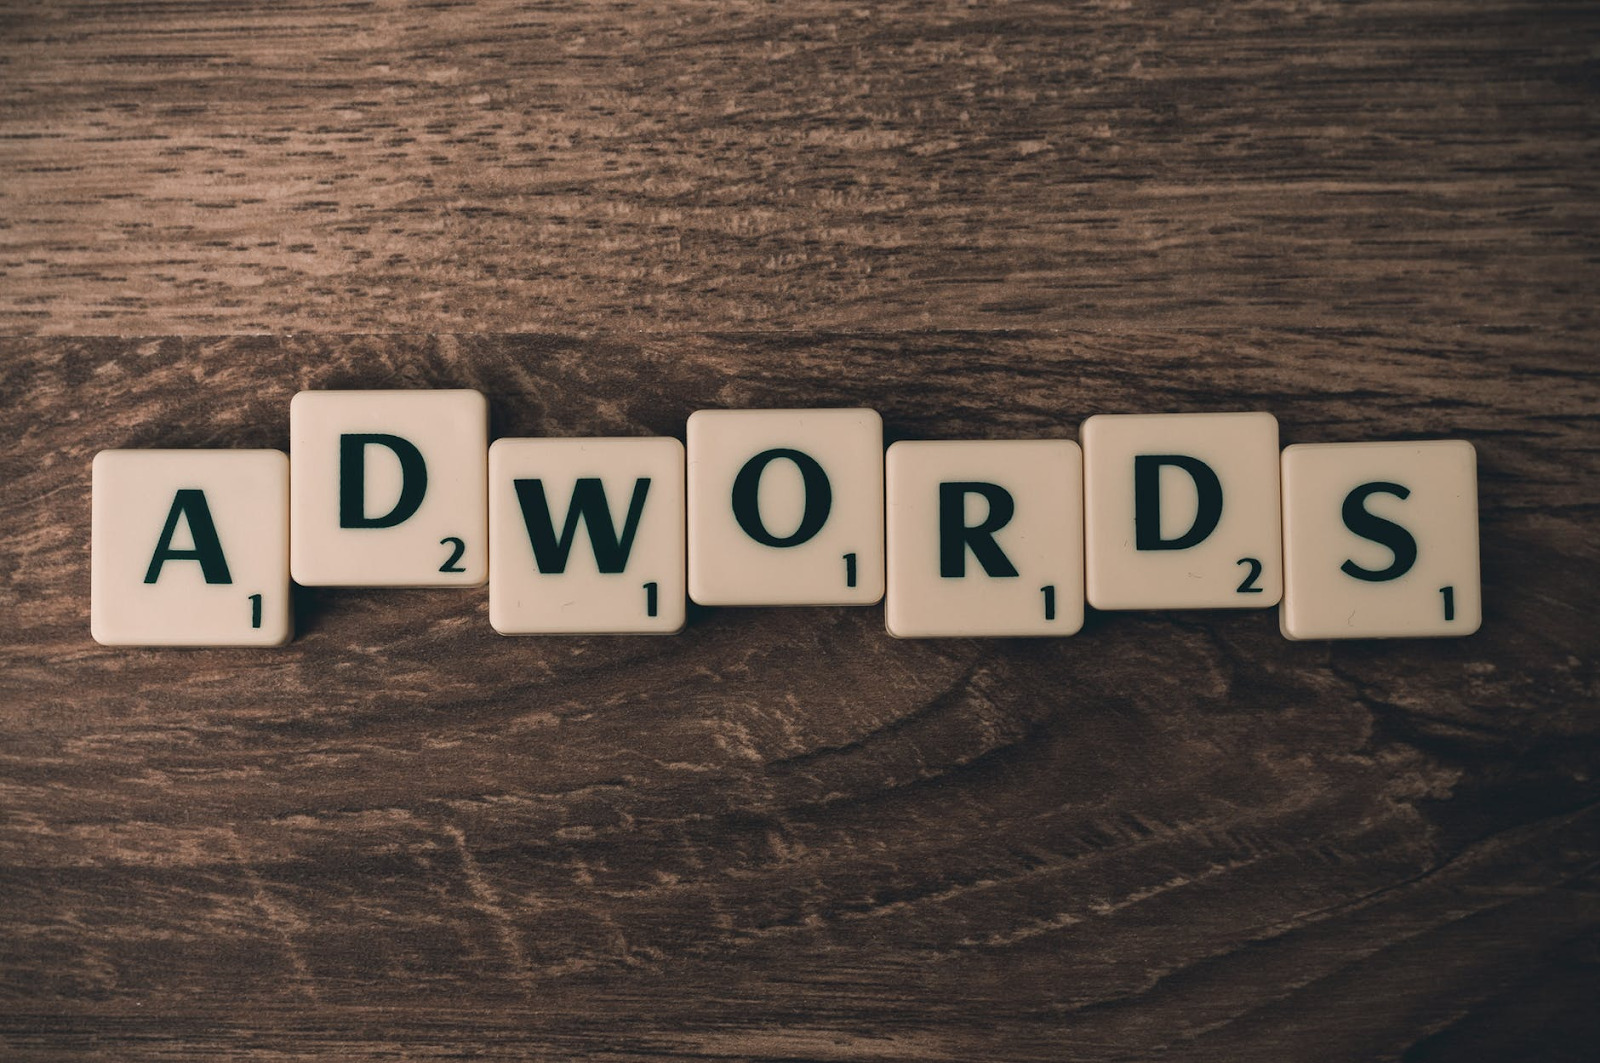 Google Adwords and other PPC advertising platforms